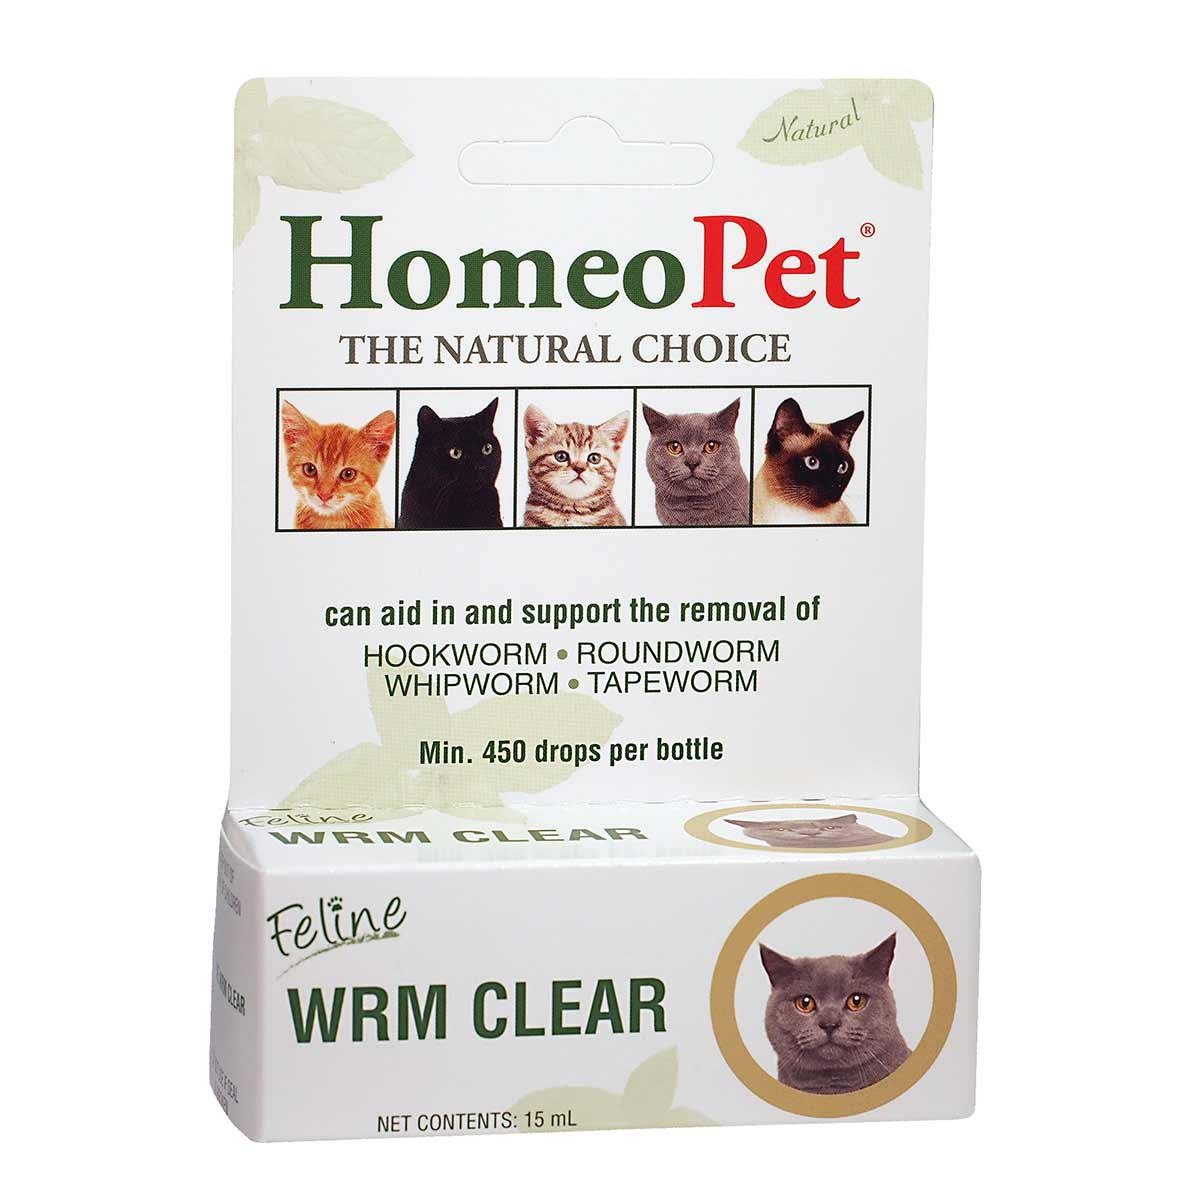 HomeoPet Feline WRM Clear Natural Dewormer for Cats available at Ryan's Pet Supplies